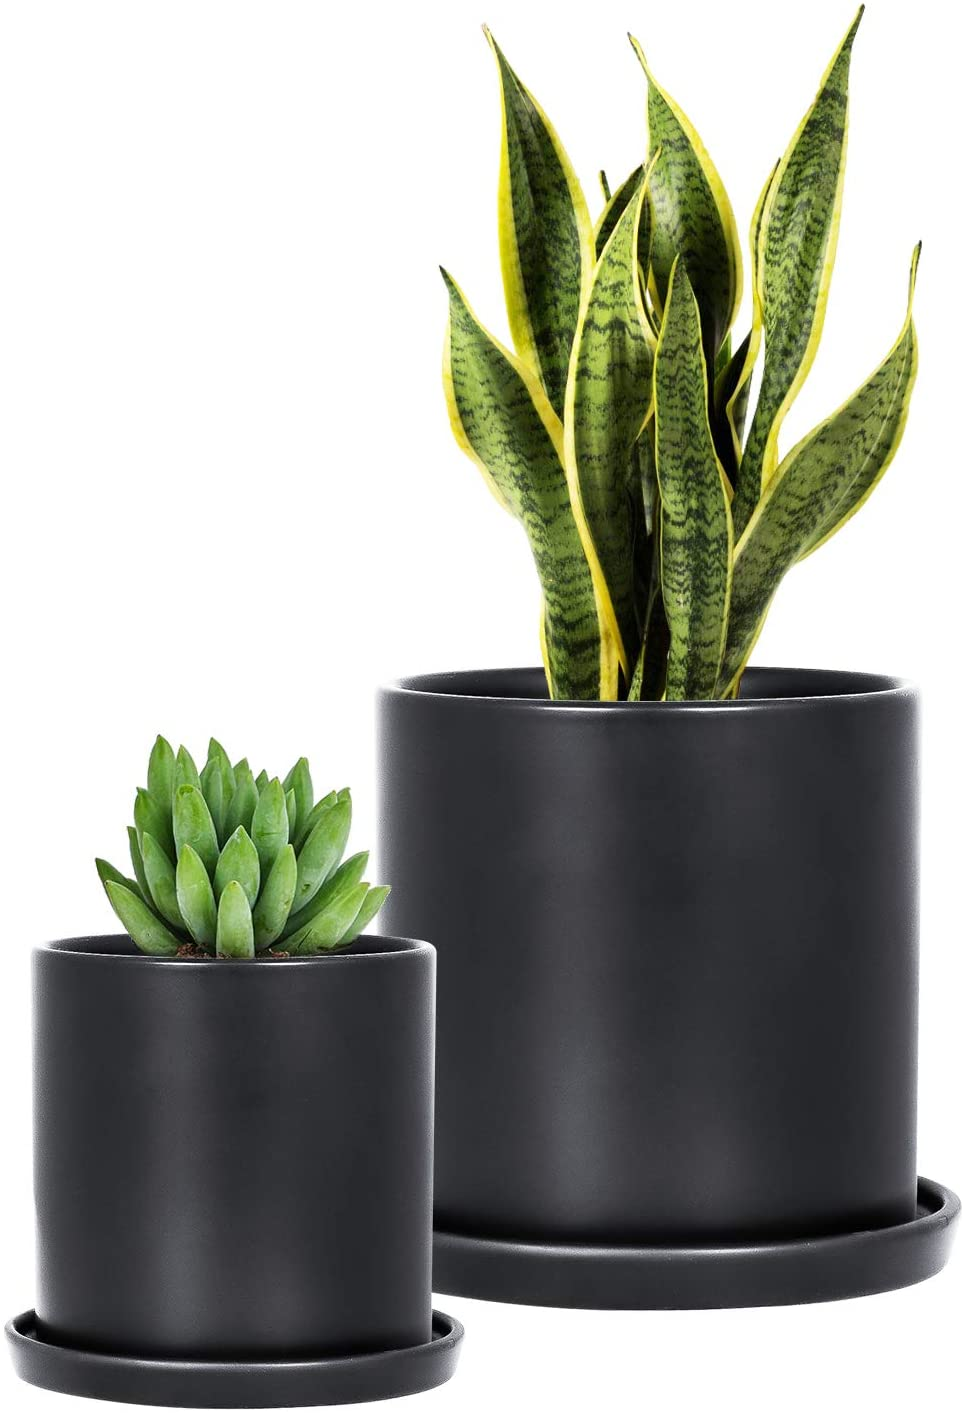 2 Pcs Ceramic Plant Pots Indoor Modern Planters Black